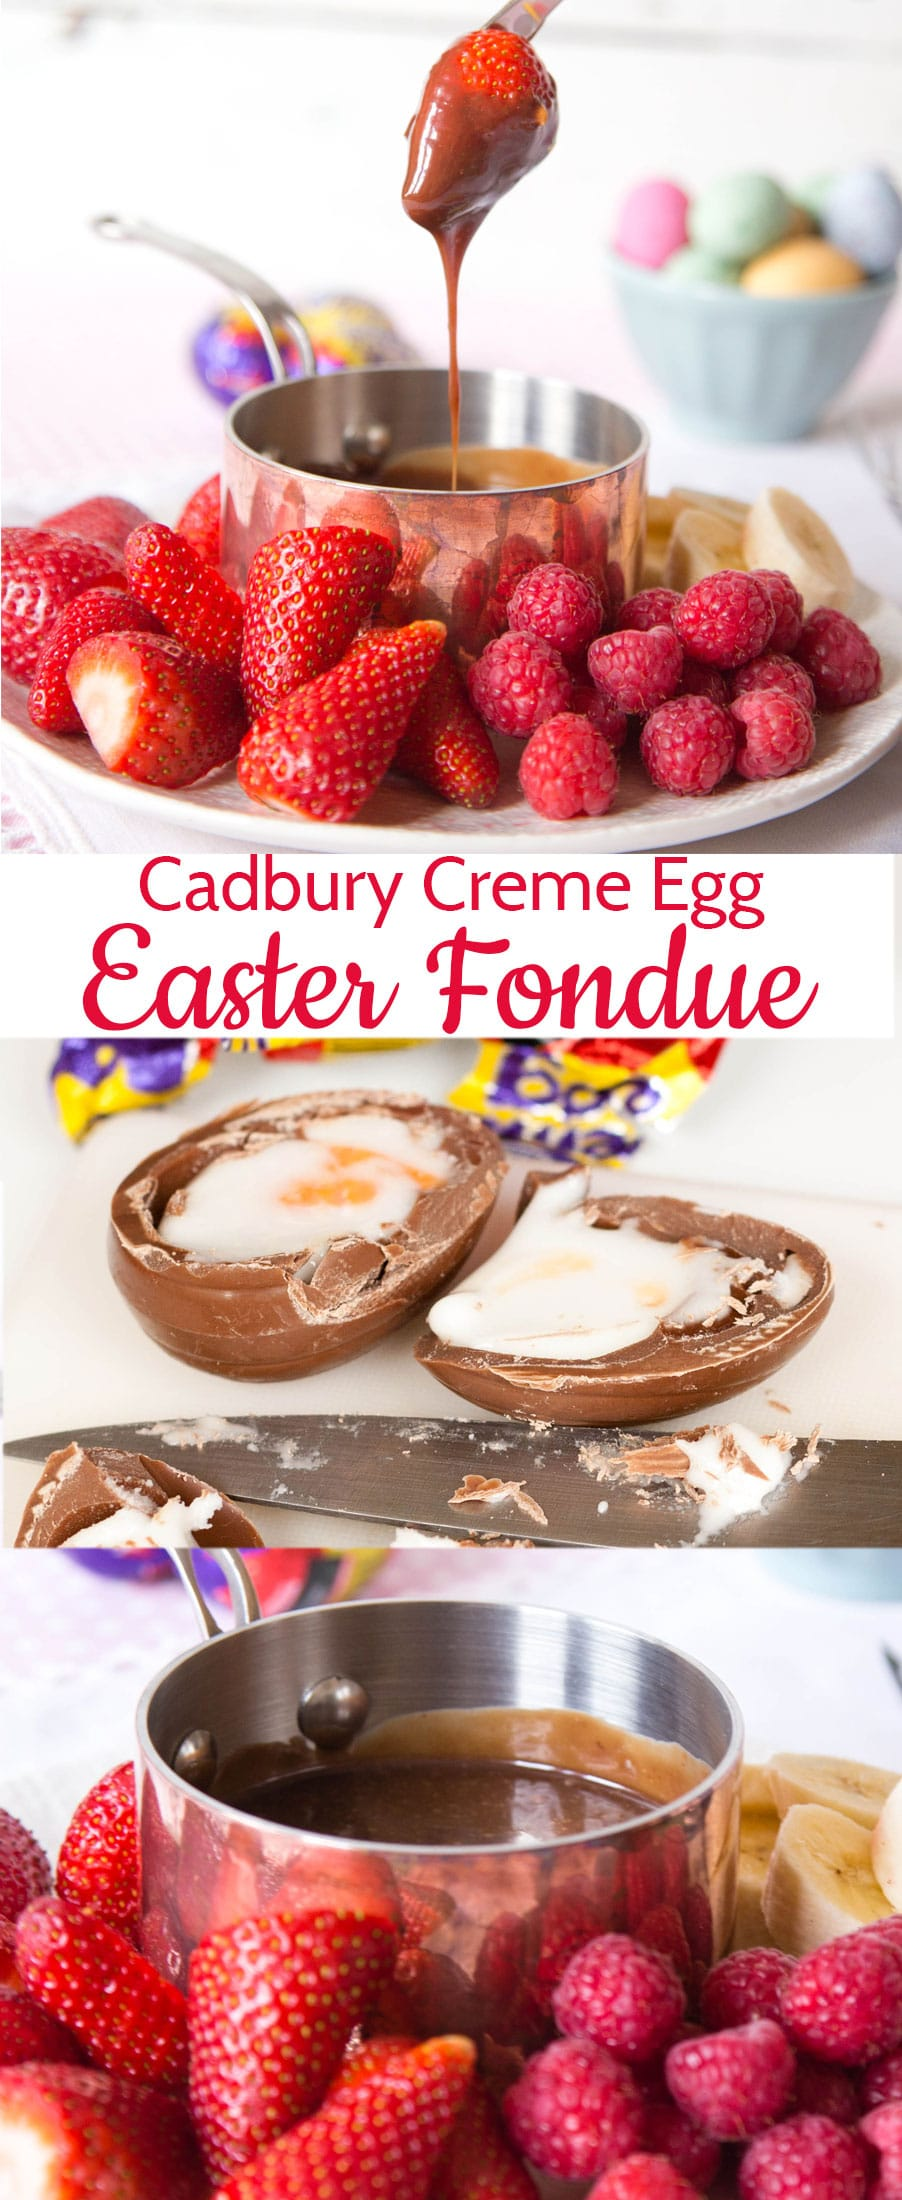 Cadbury Creme Egg Fondue: An easy and delicious Cadbury Creme Egg recipe perfect for easy entertaining at Easter.